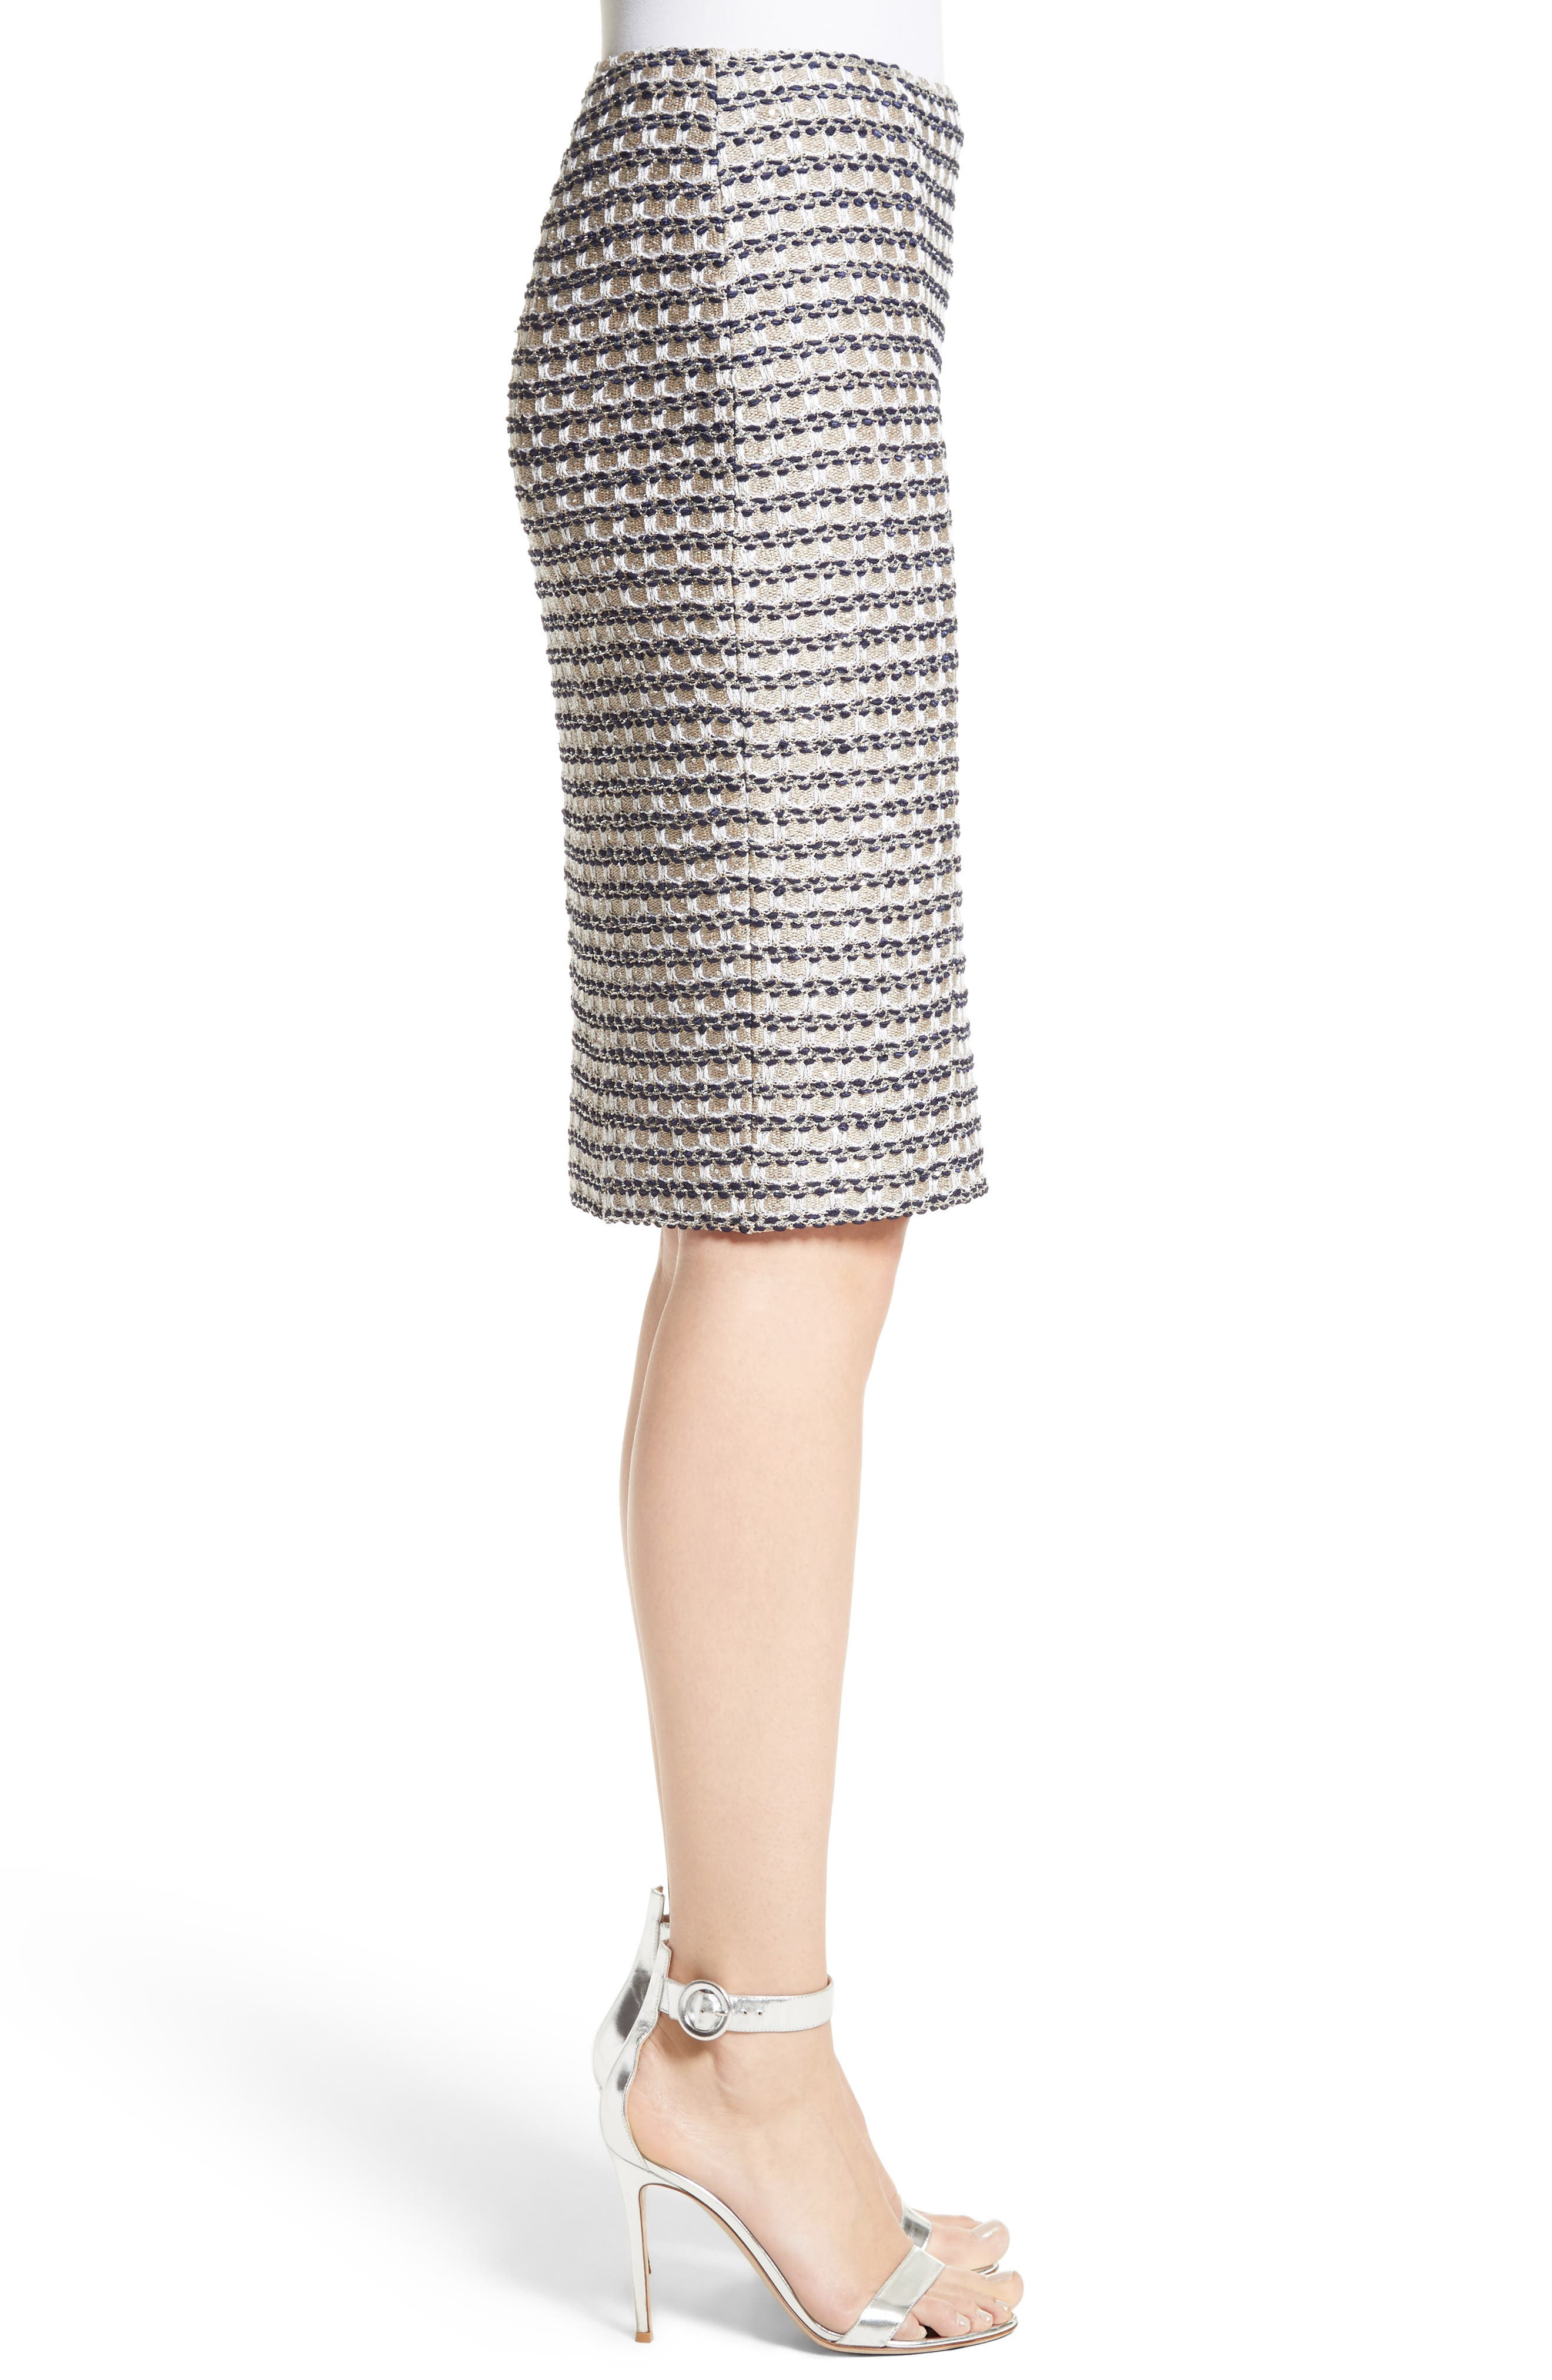 Vany Tweed Knit Pencil Skirt,                             Alternate thumbnail 3, color,                             040